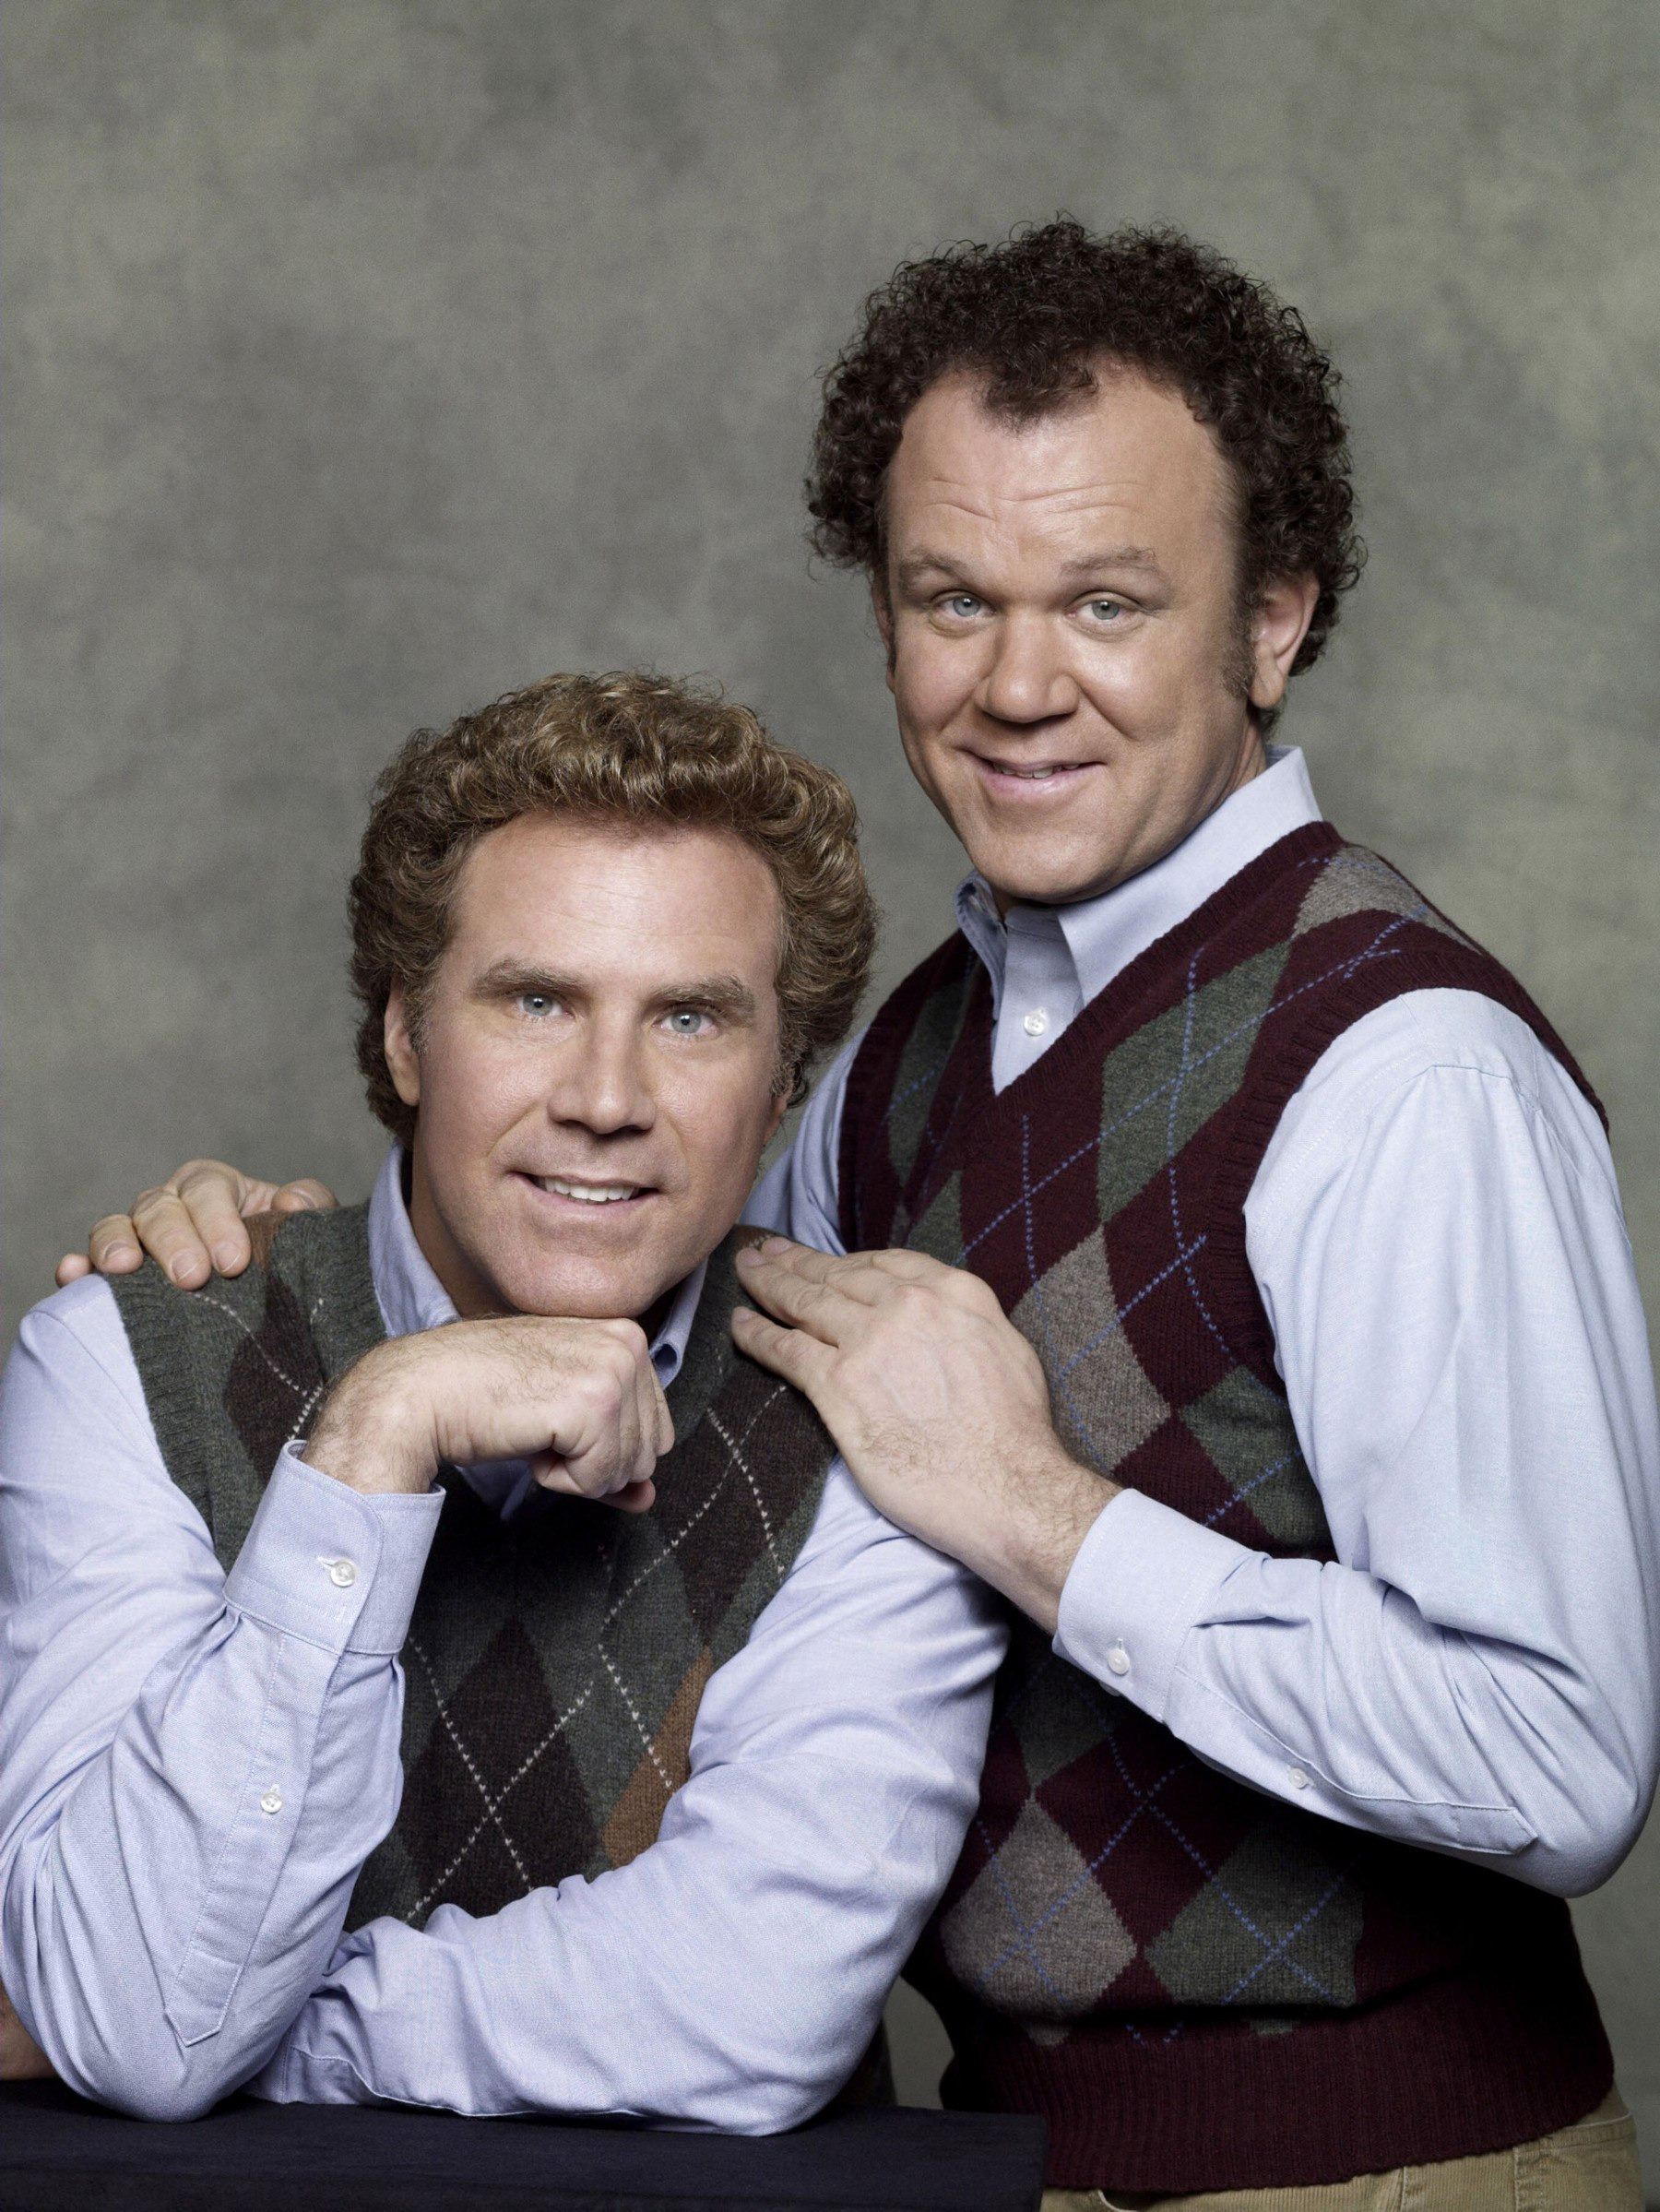 rs 19019 20140723 stepbrothers x1800 1406145572 10 'Rotten' Films That Are Actually Classics